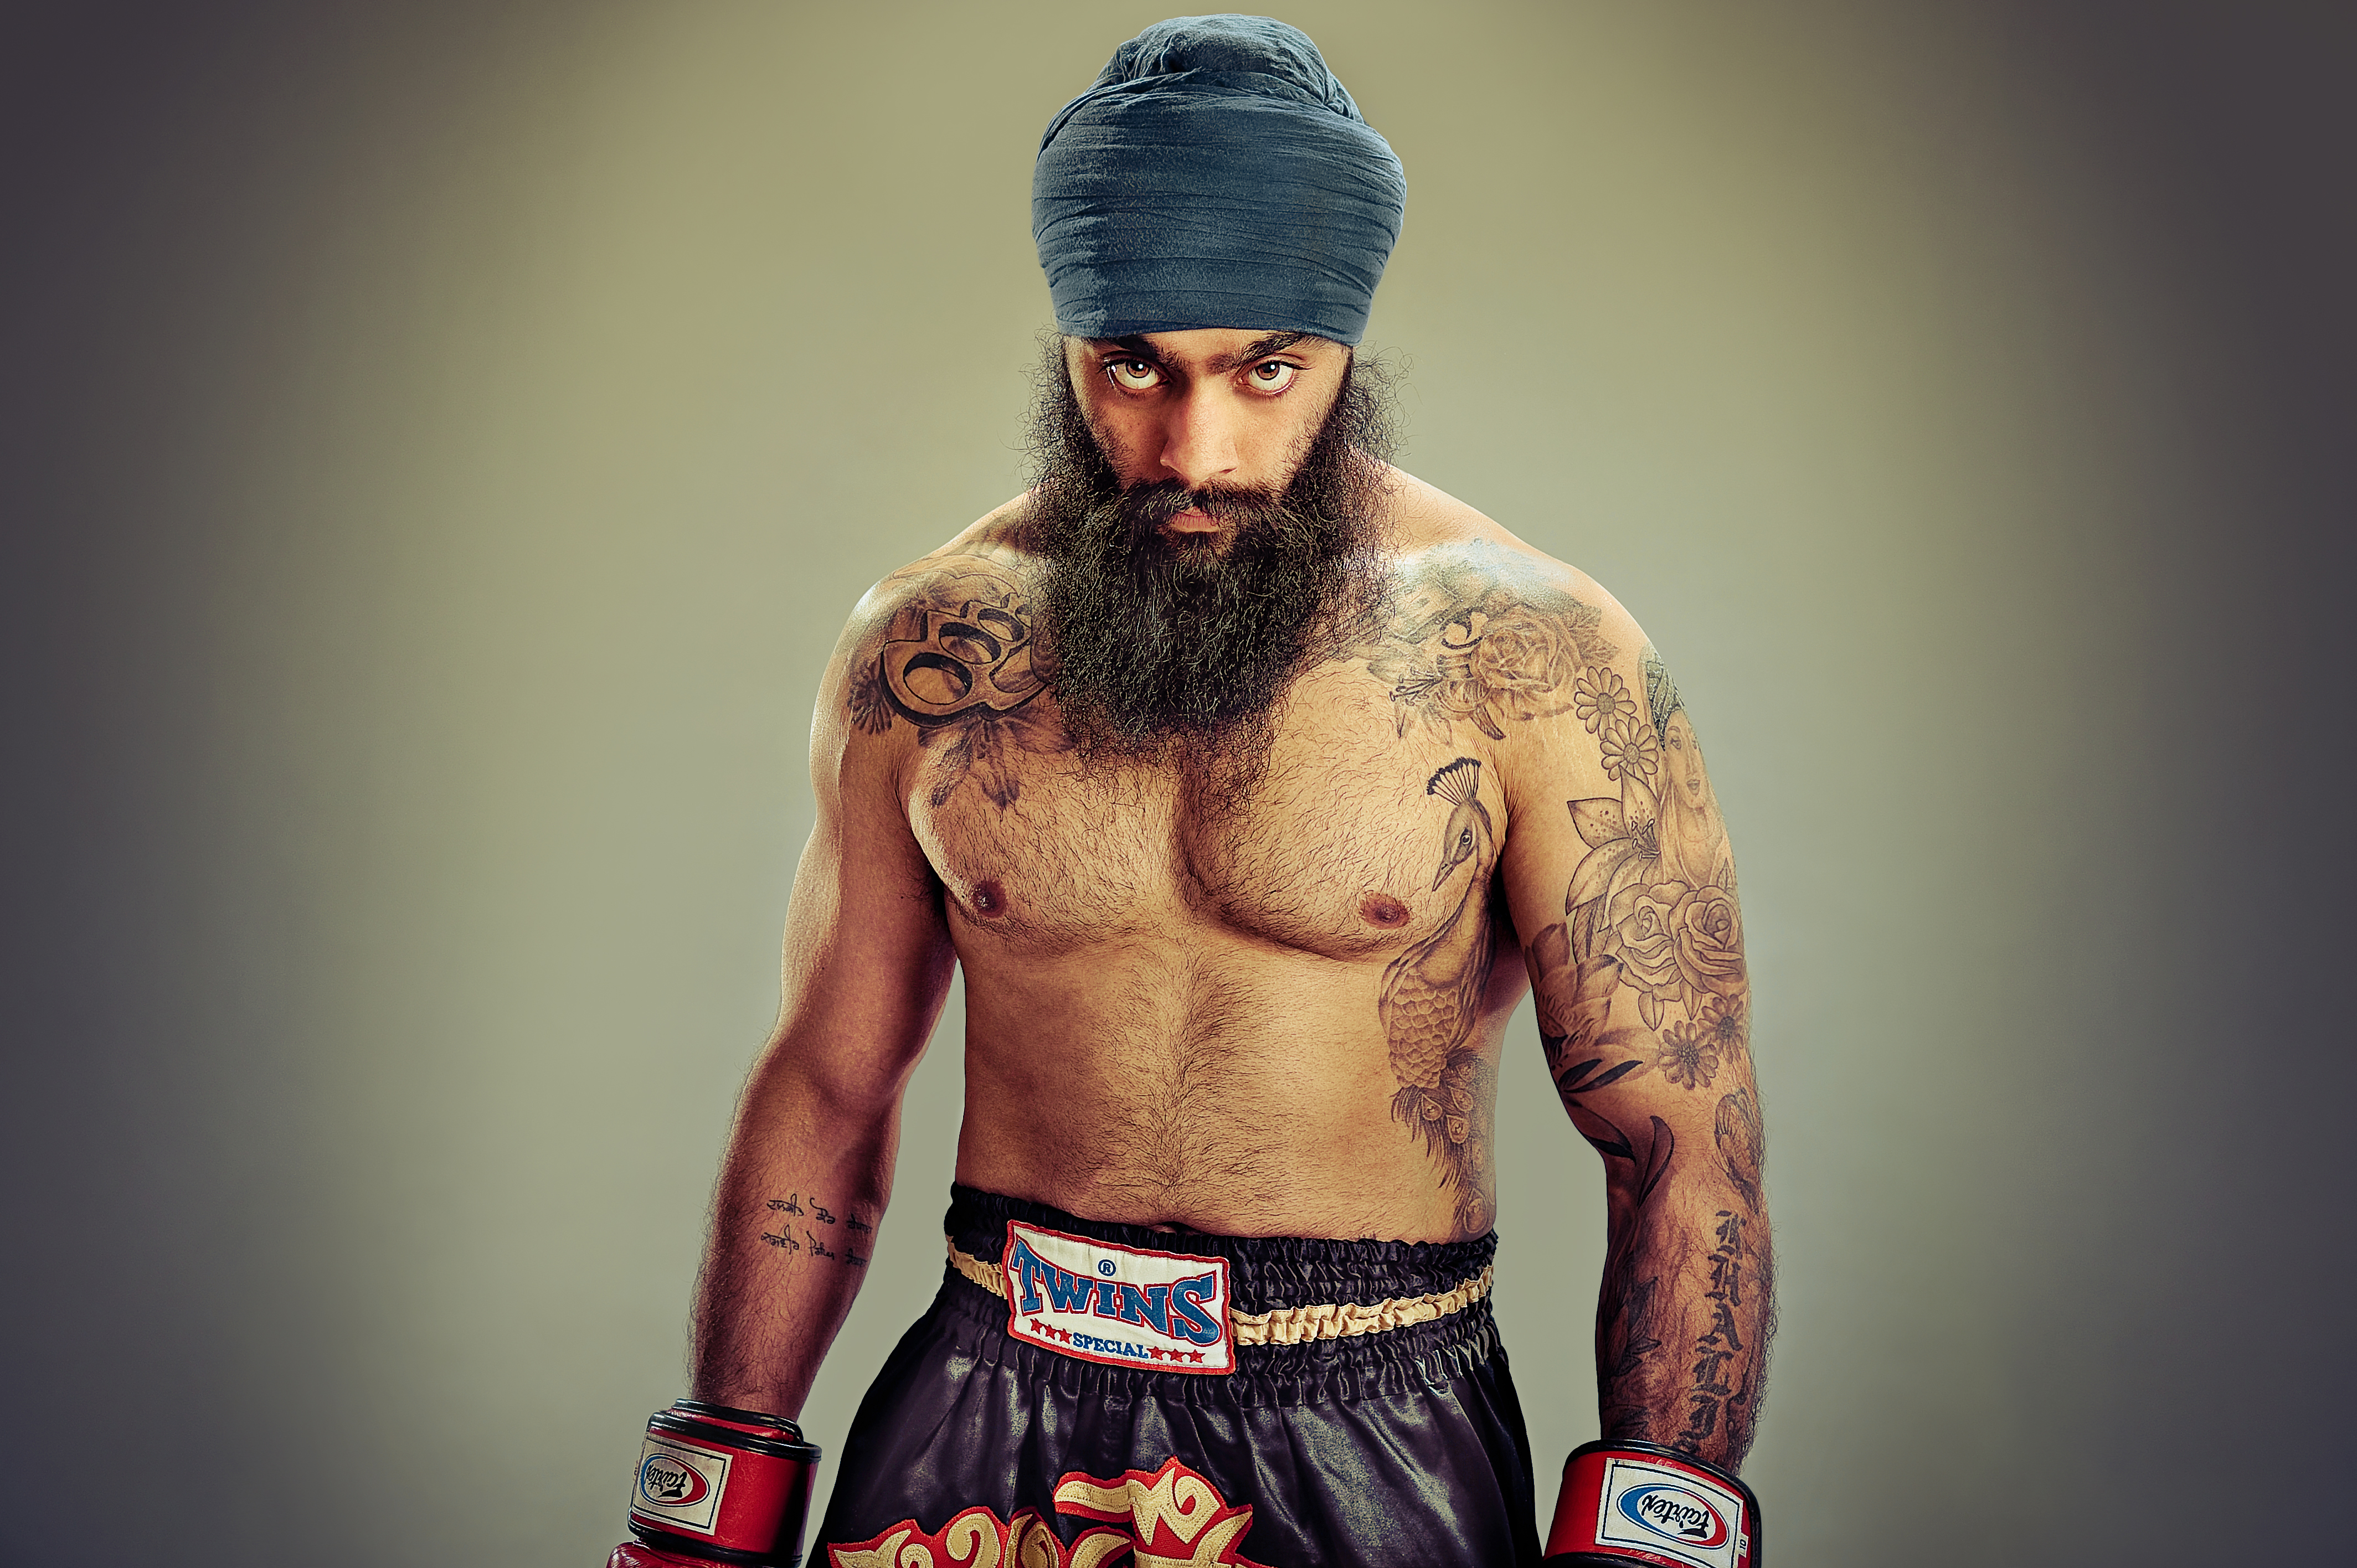 PRIDE OF PLACE: Kickboxer Kanwar Singh is one of the subjects in Turbans and Tales, a new book by award-winning photographers Amit and Naroop